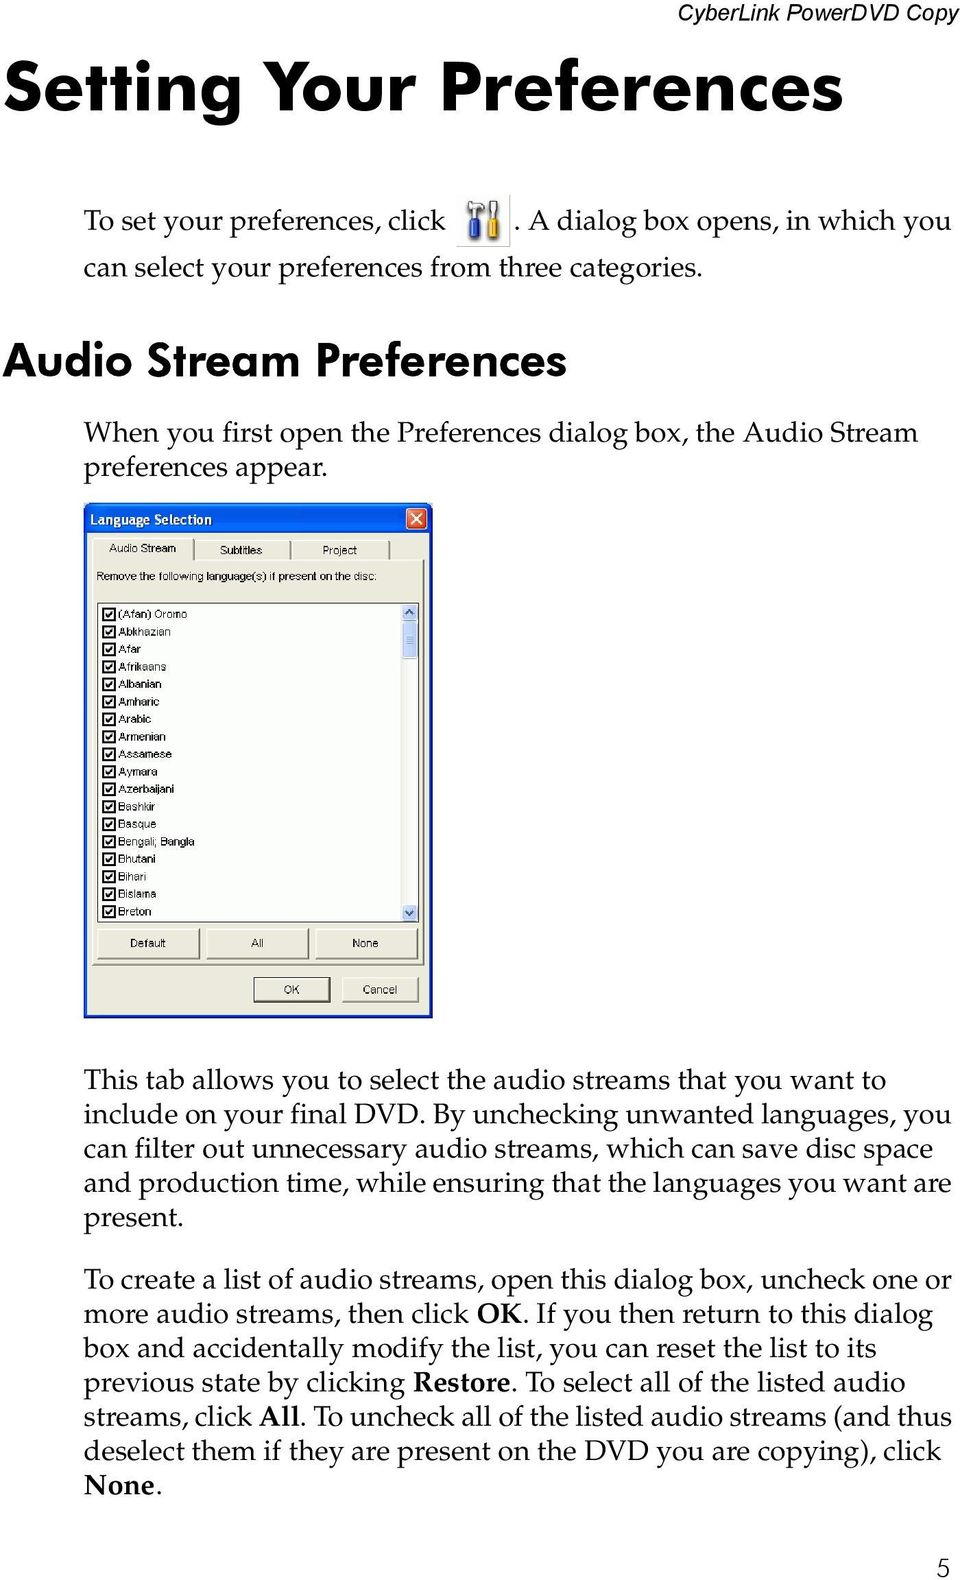 This tab allows you to select the audio streams that you want to include on your final DVD.